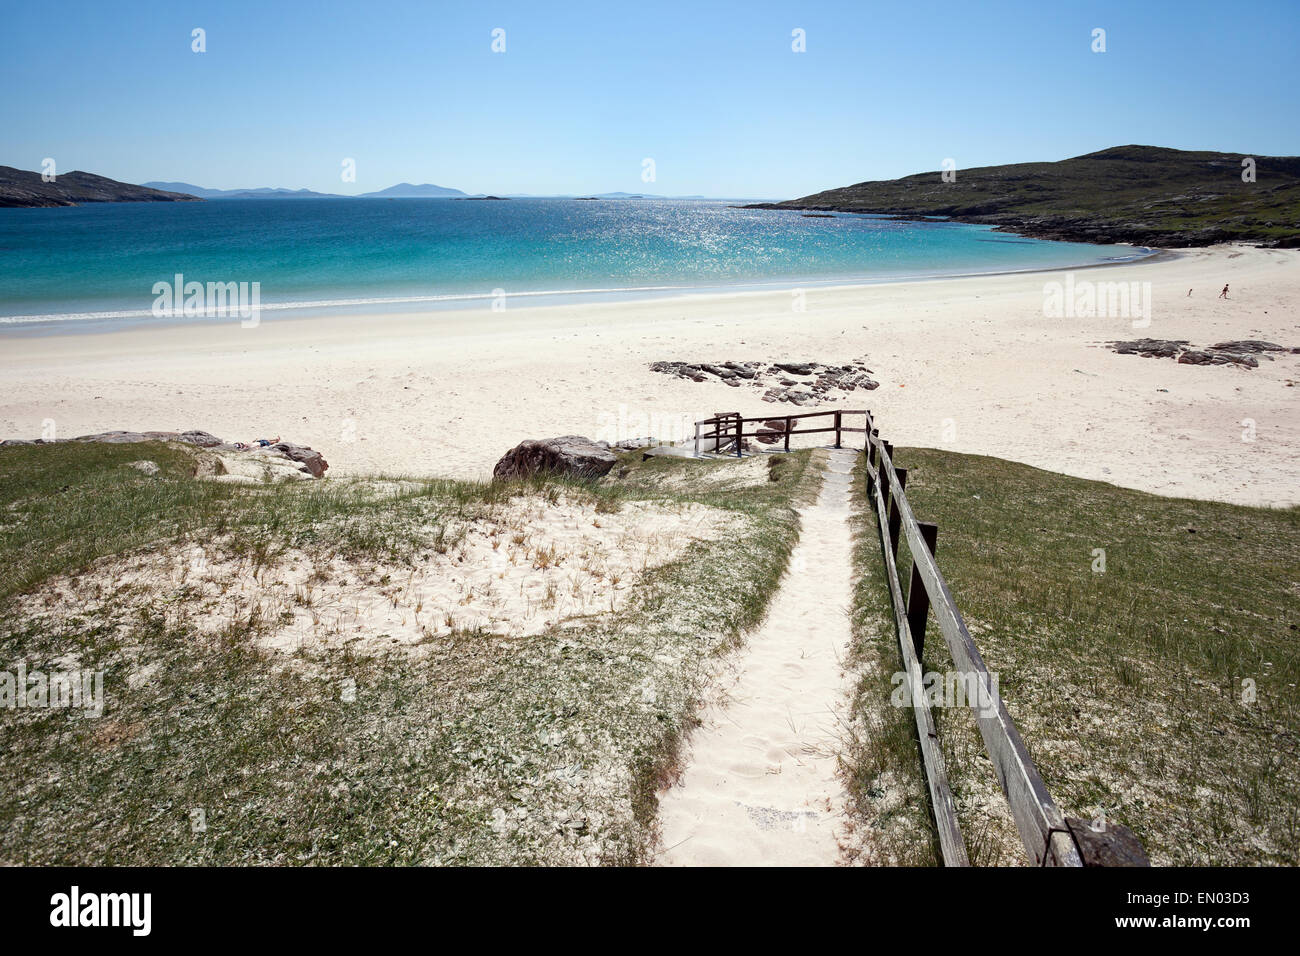 High sun over Huishinish beach, Isle of Harris, Outer Hebrides - Stock Image